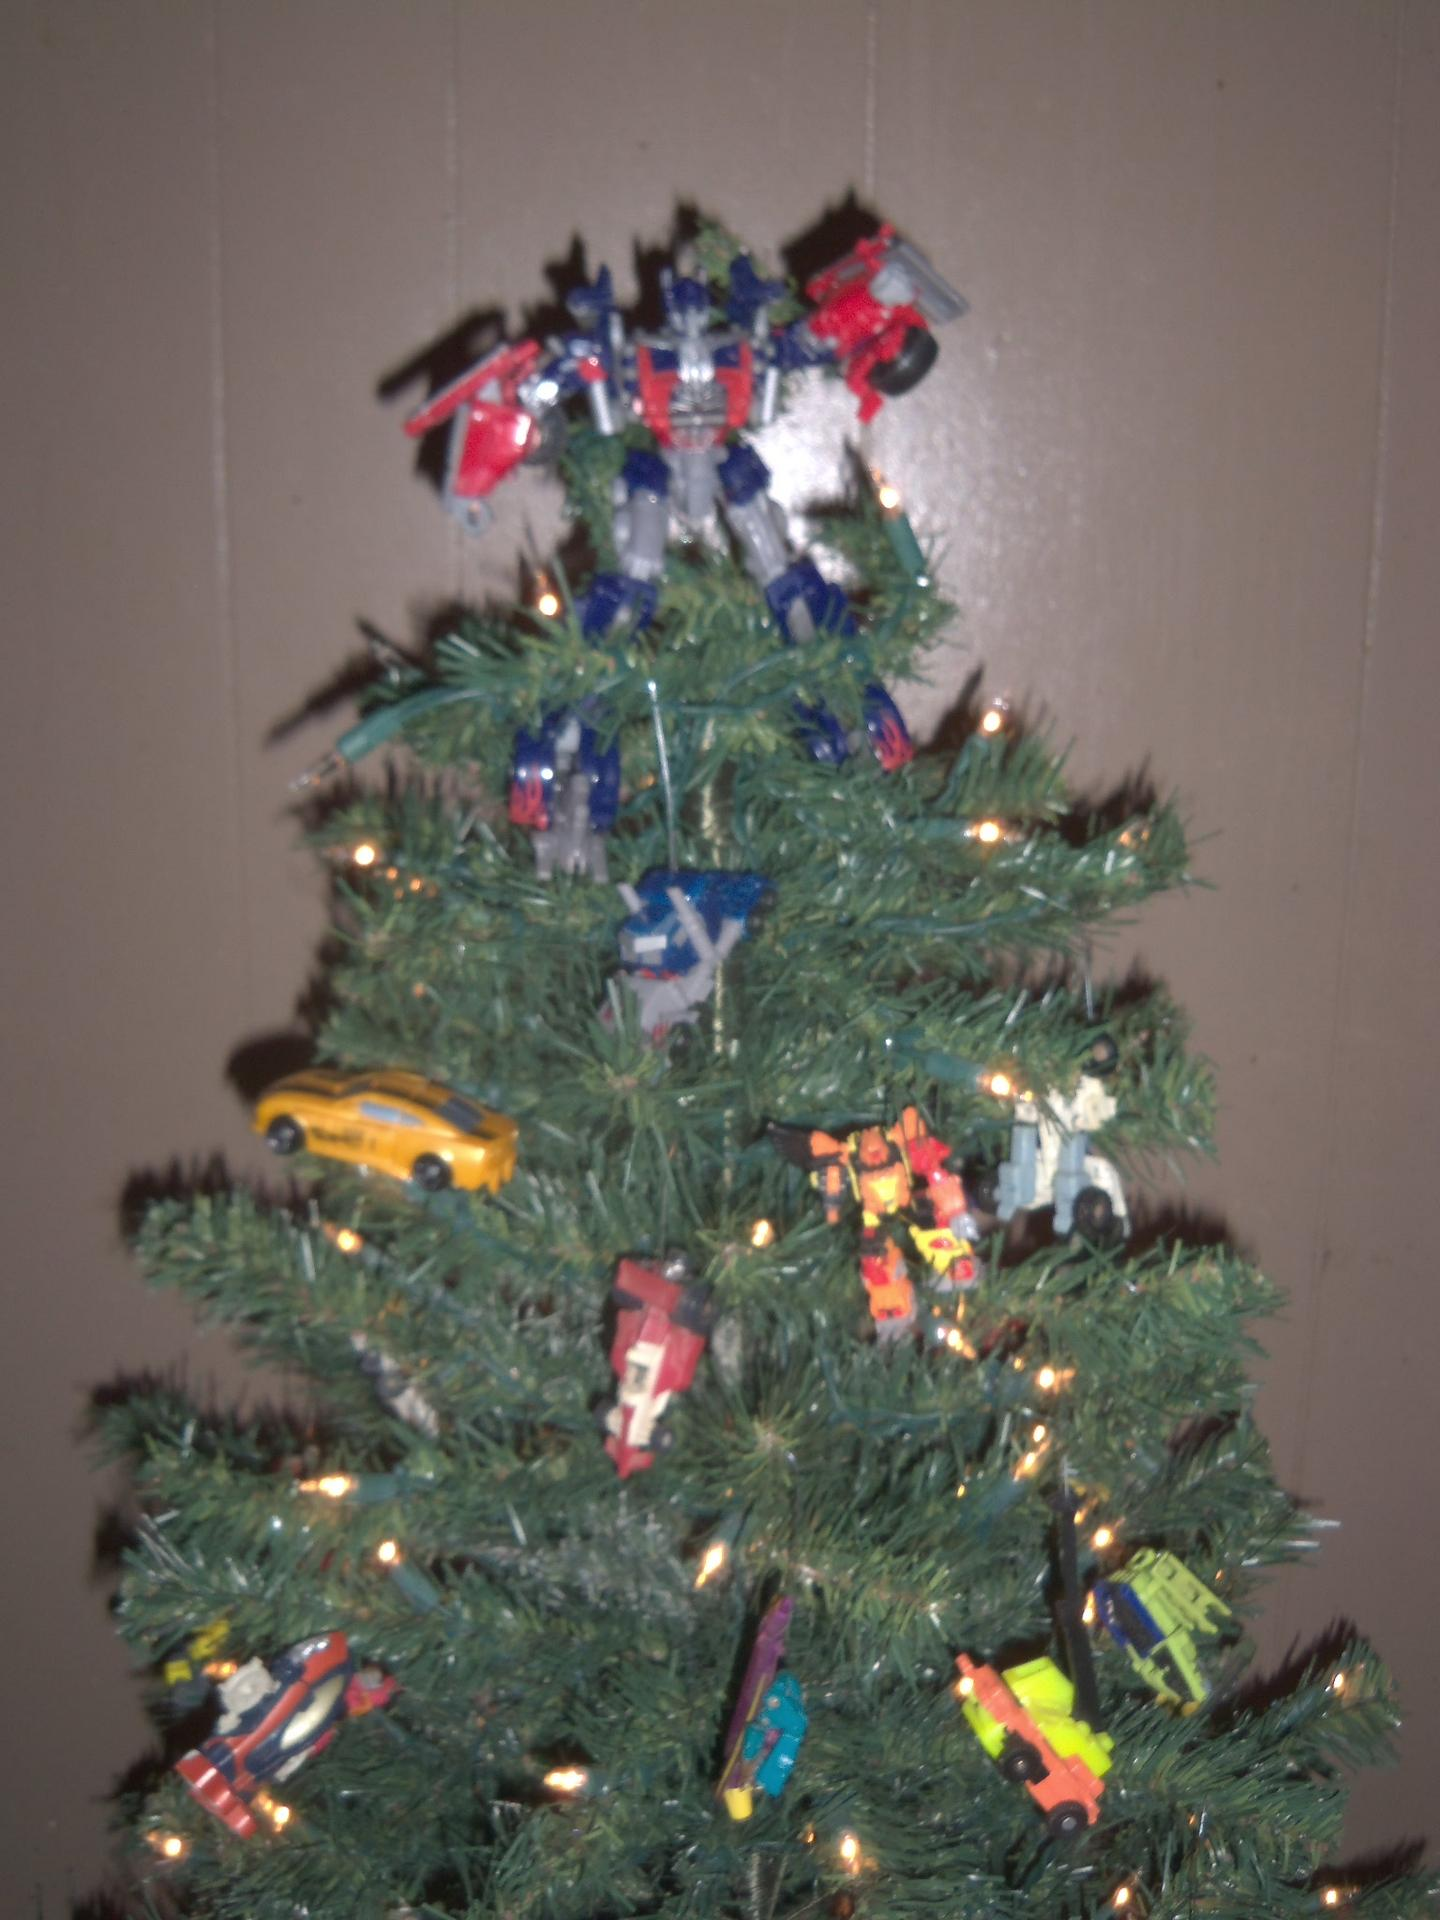 Transformers Christmas Tree | TFW2005 - The 2005 Boards